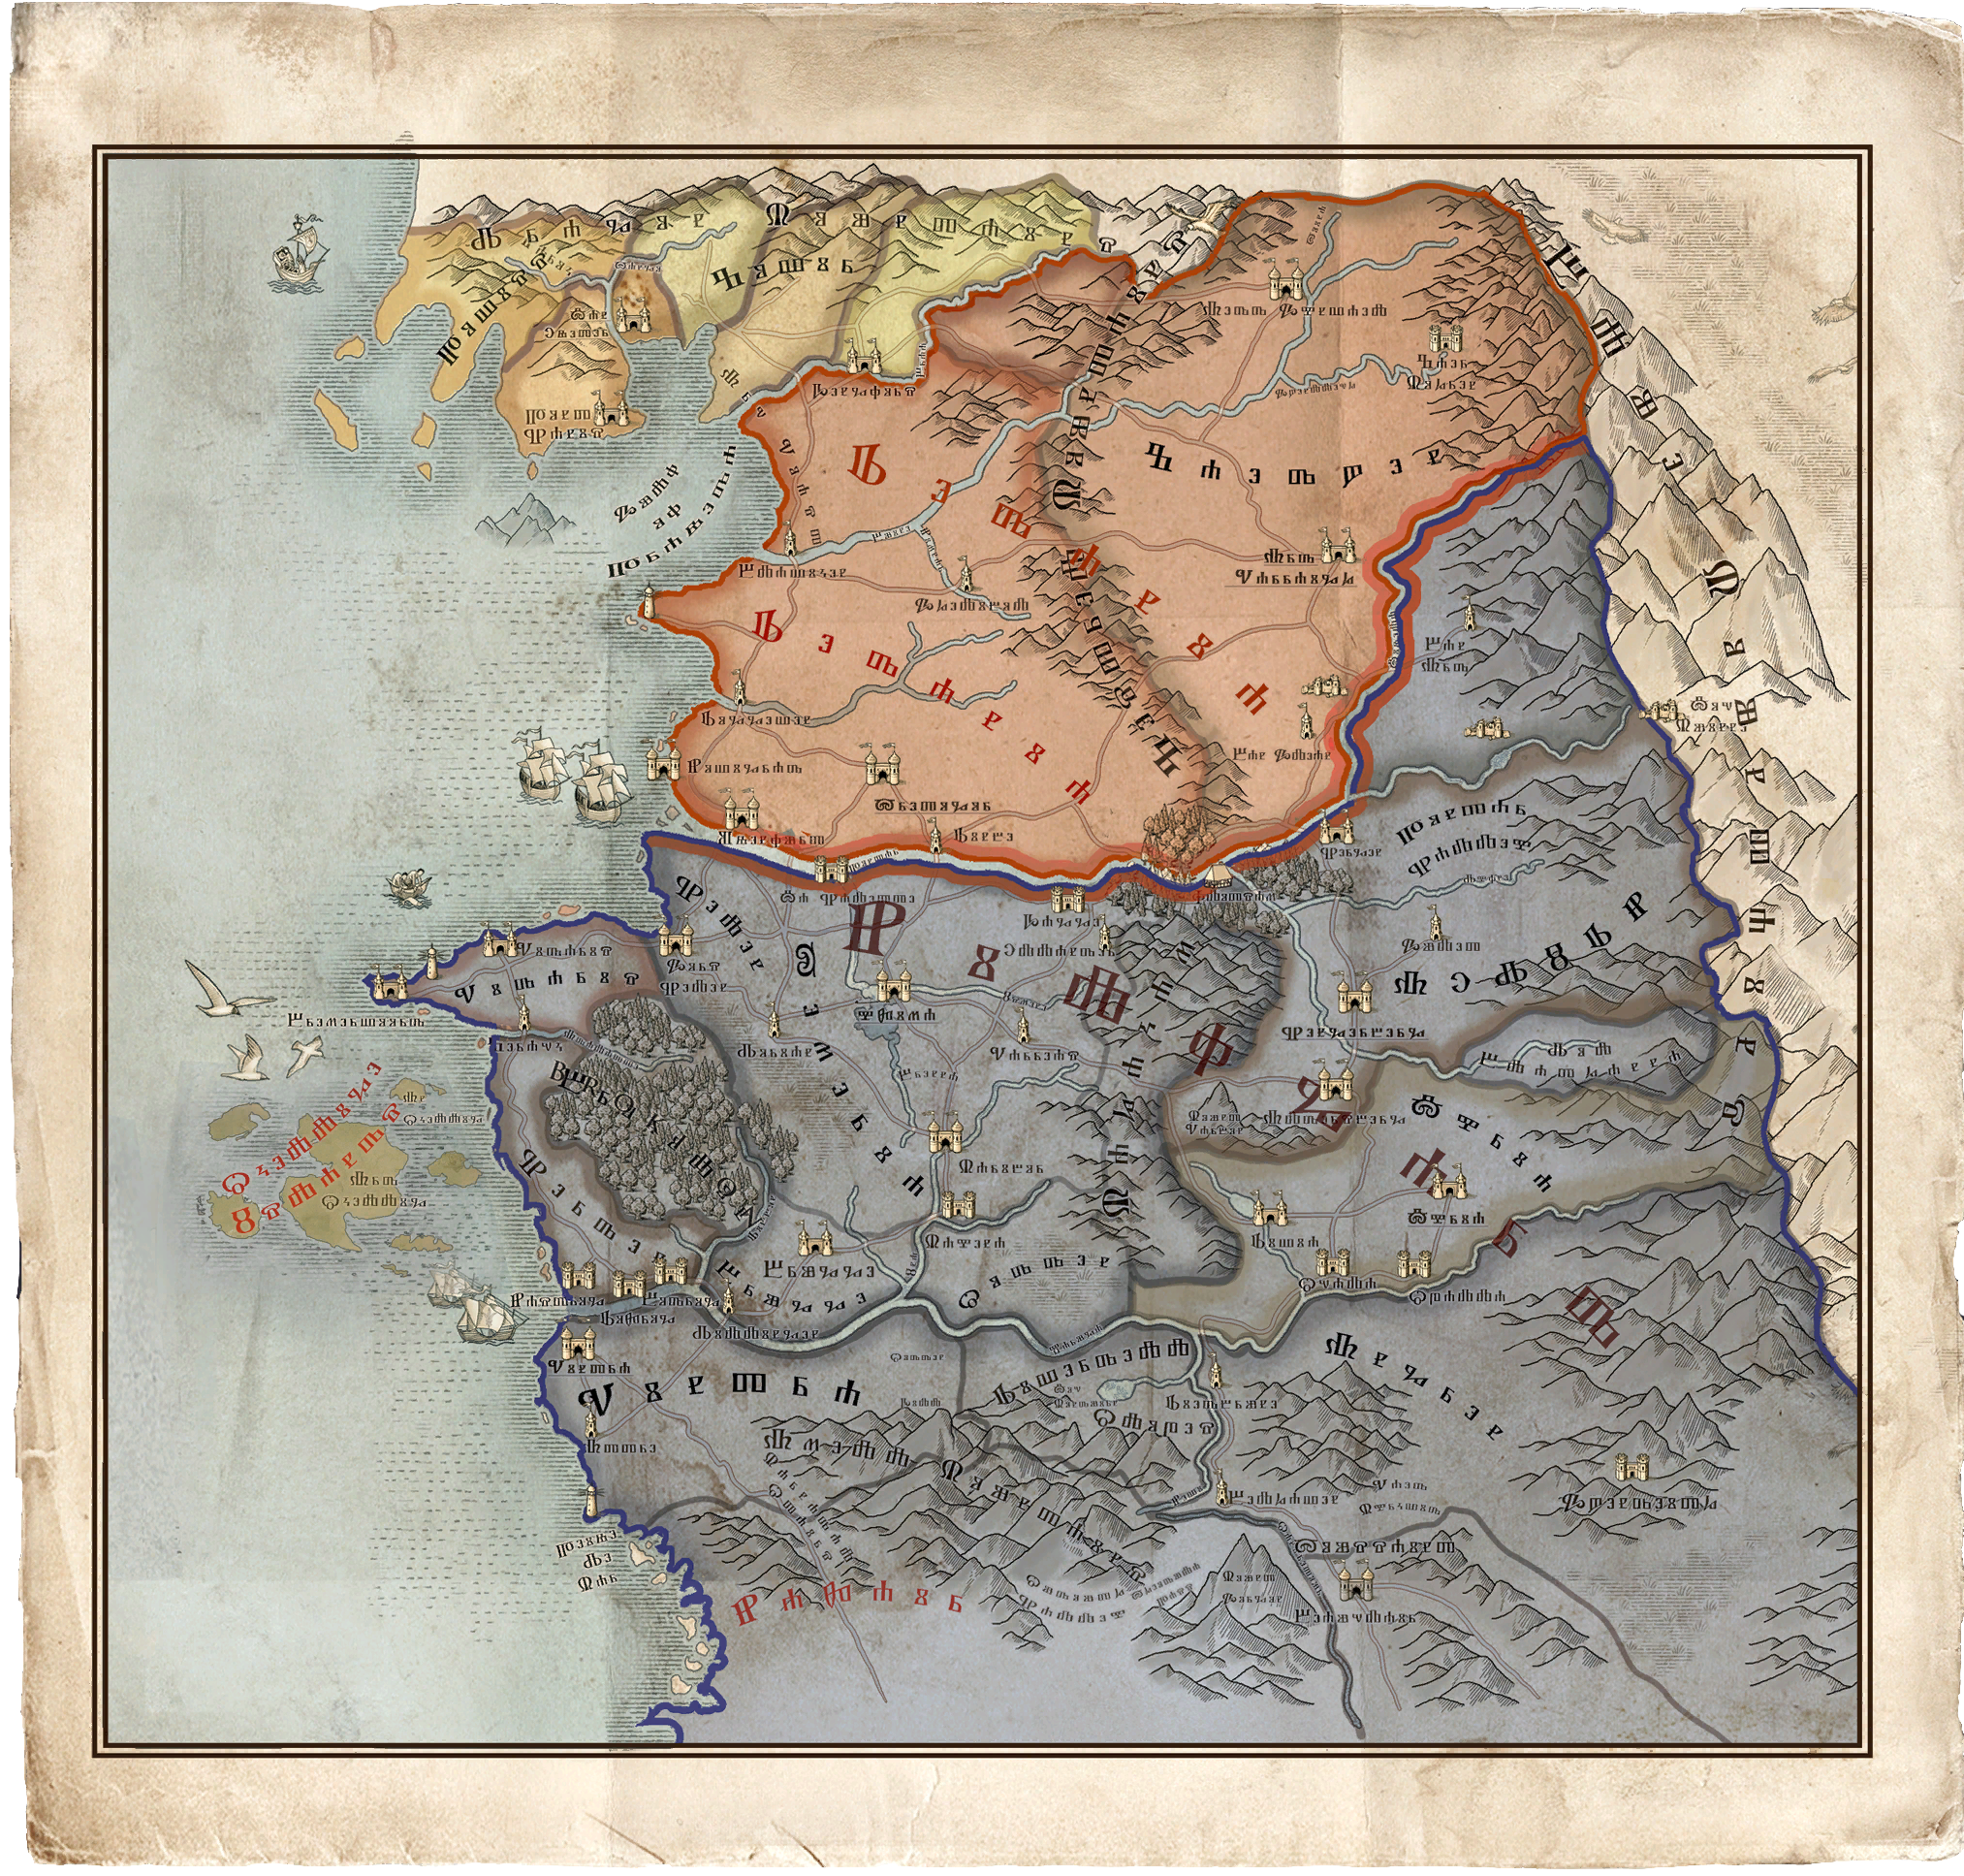 Image the witcher 3 map of northg witcher wiki fandom the witcher 3 map of northg gumiabroncs Image collections